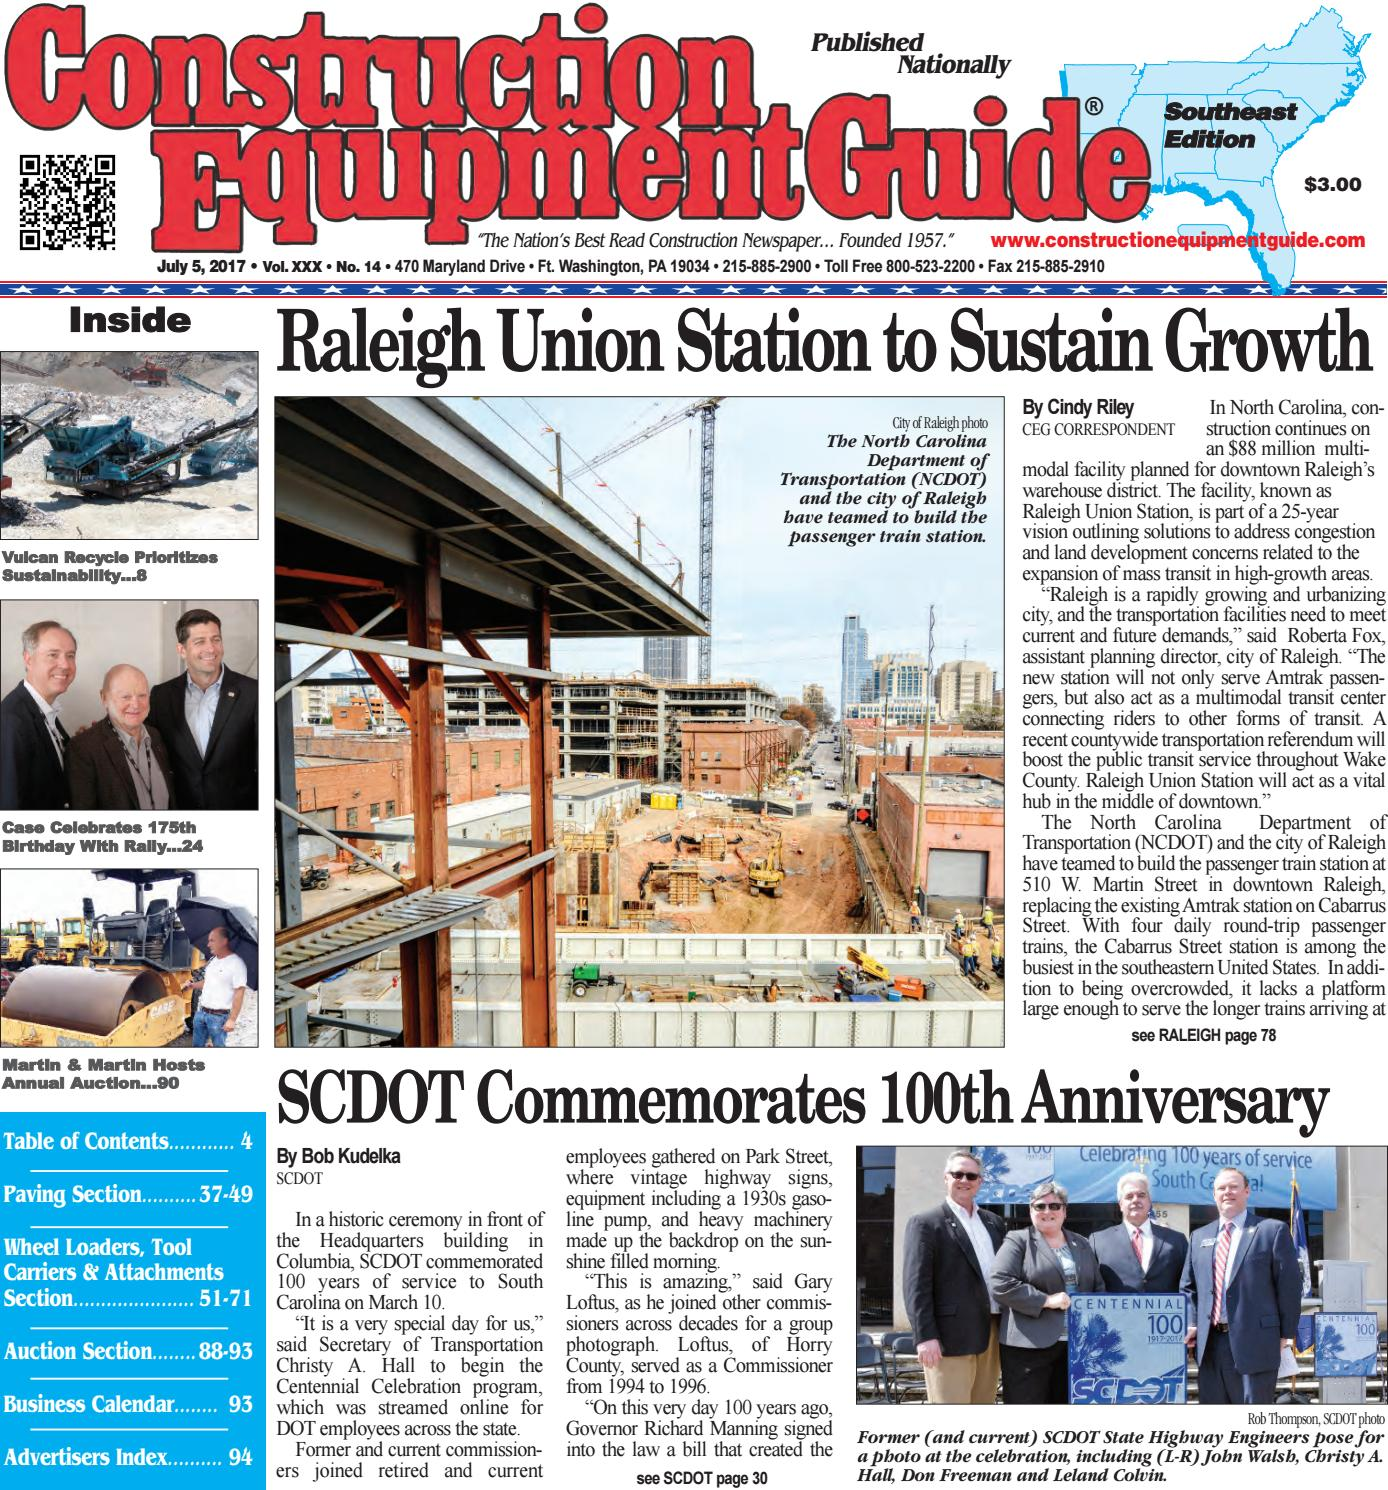 Southeast 14, July 5, 2017 by Construction Equipment Guide